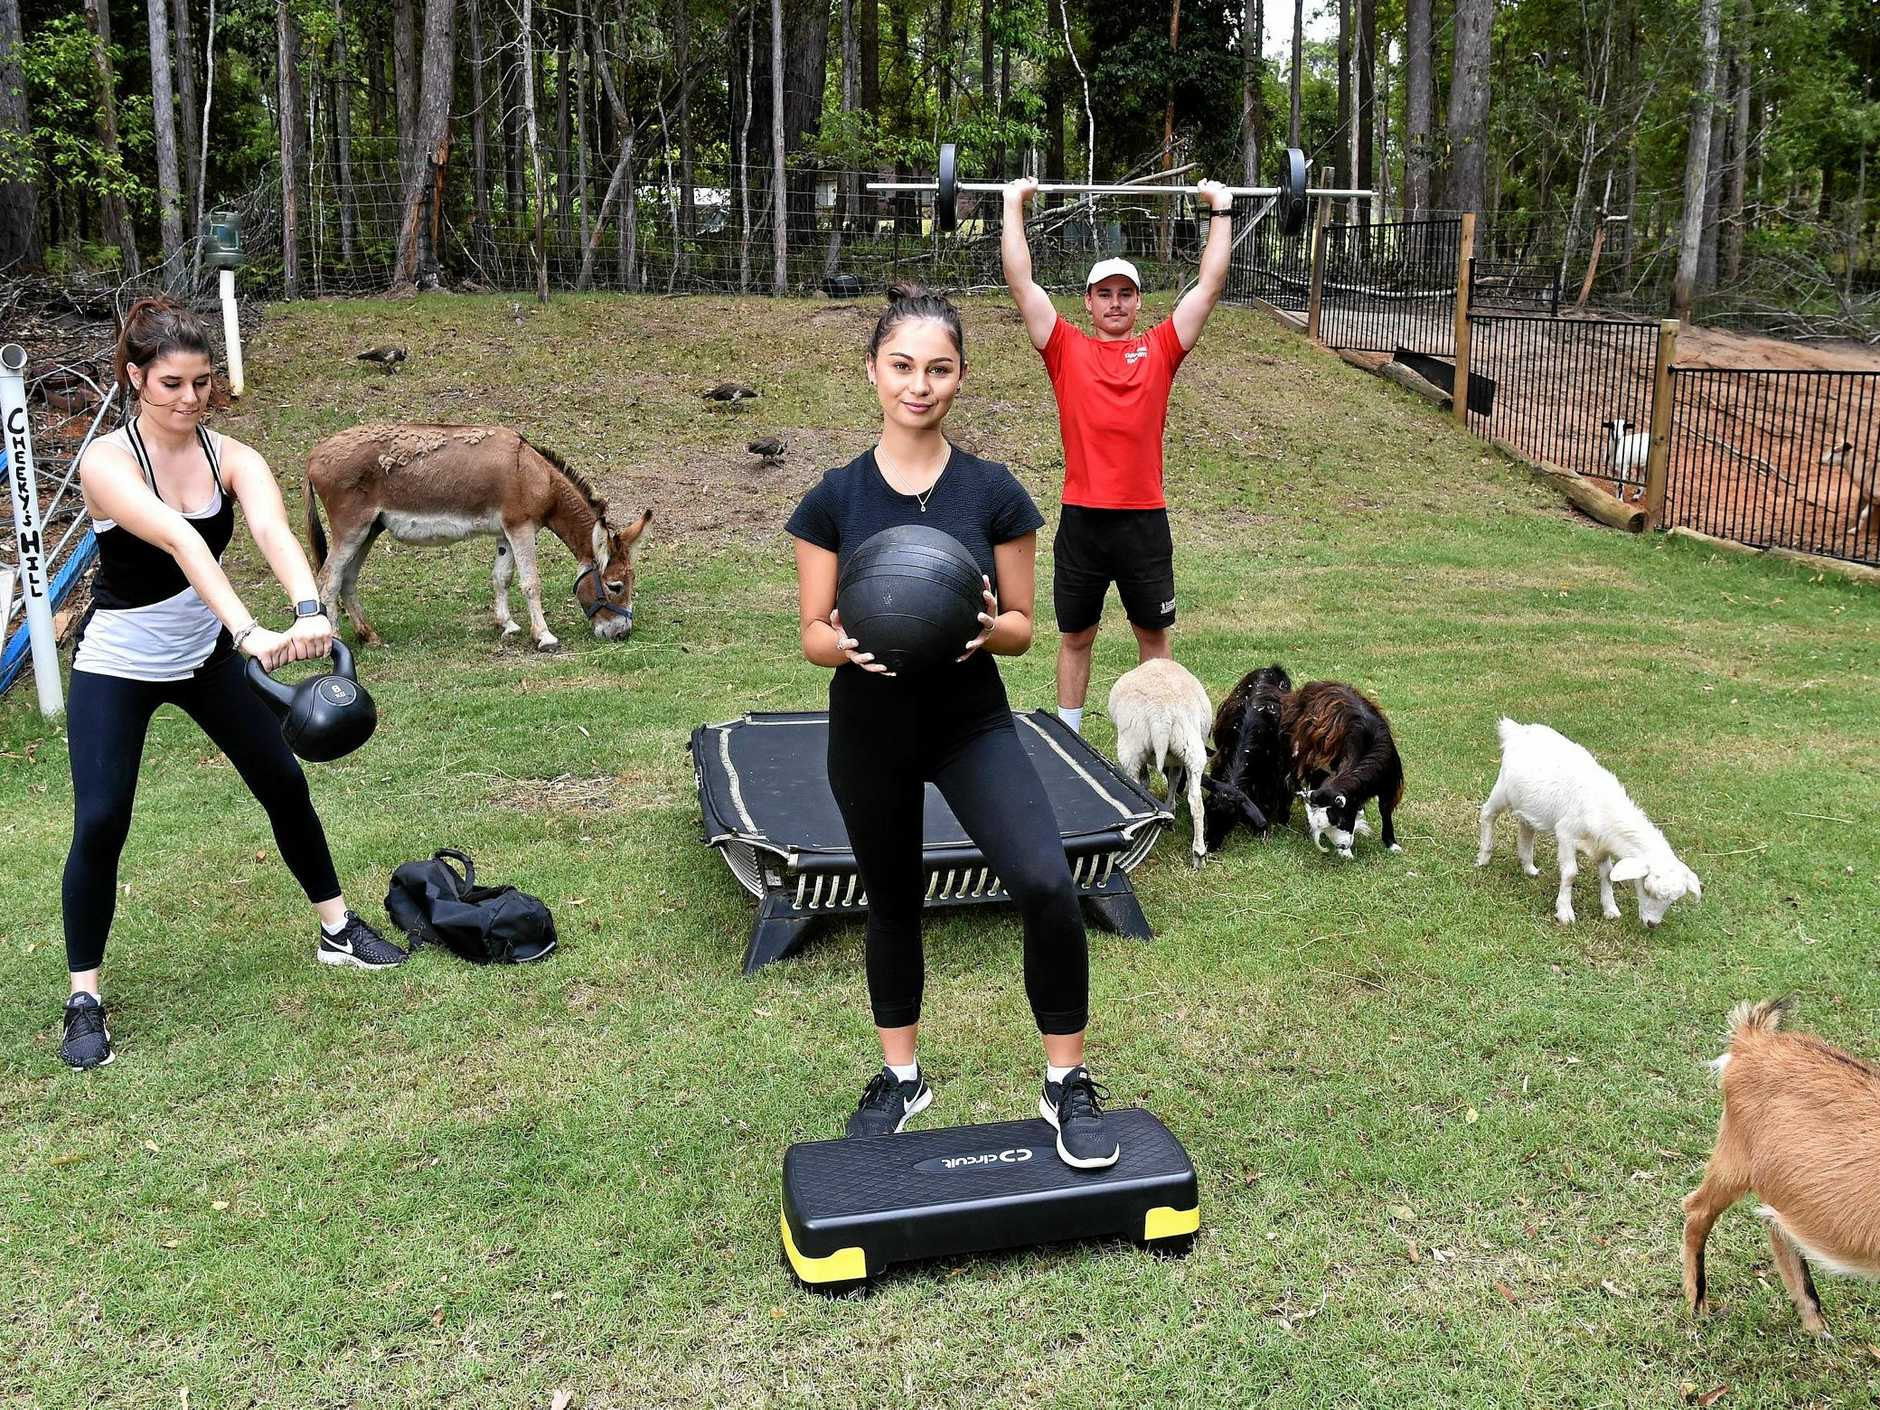 MAKING MOO-VES: Tanawha Farm Fit allows clients to exercise oustside alongside farm animals.Brittany-Jean Jones, Ella Tunbridge and Blake Jones working out on the farm.